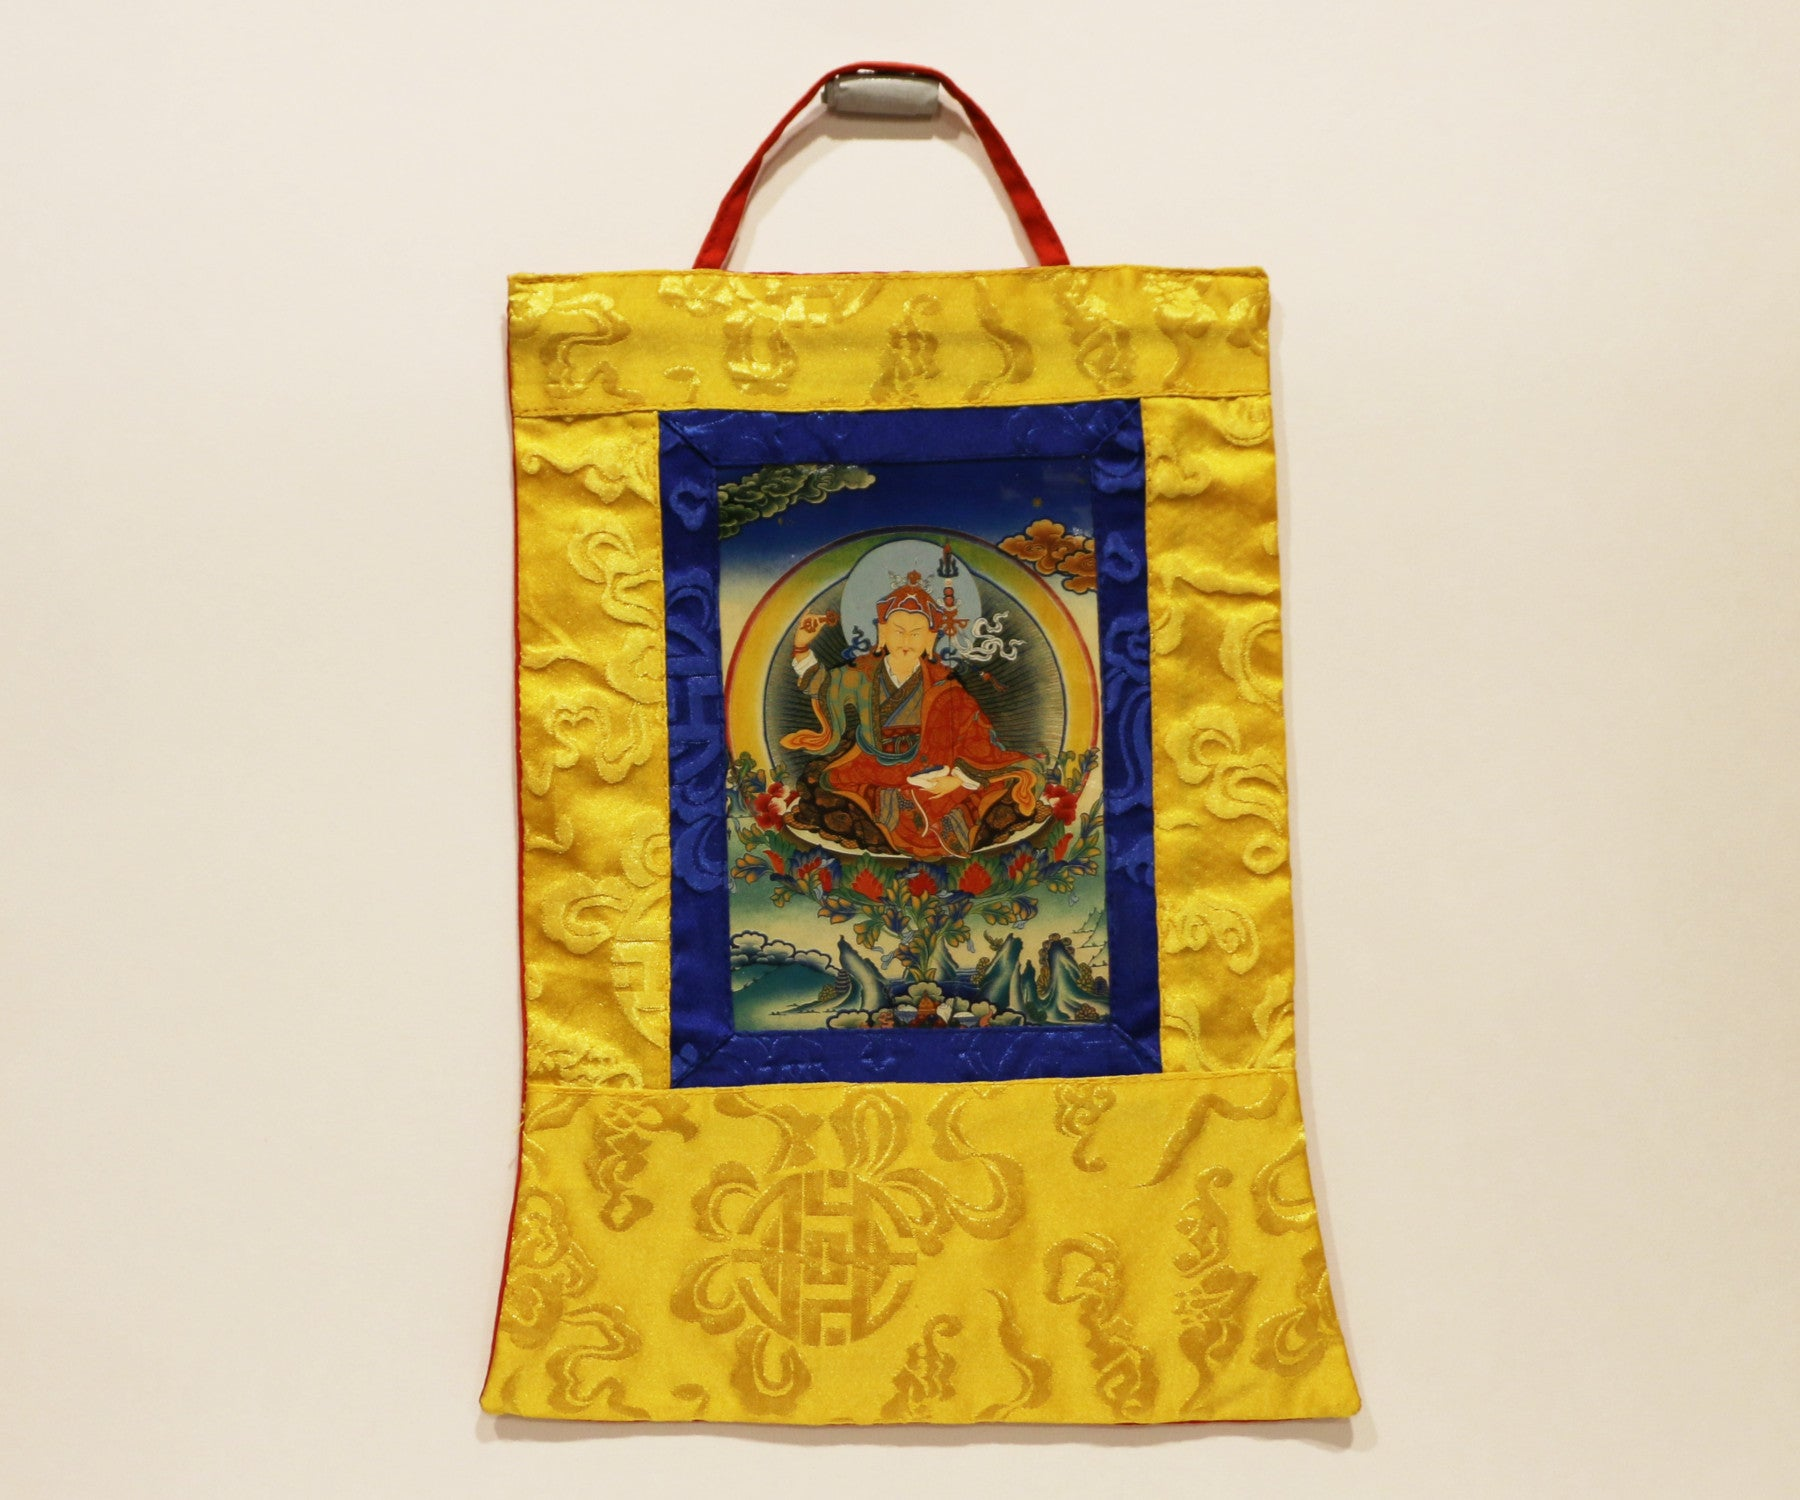 Mini Obstacles & Protection (Padmasambhava) Thangka - Tibet Arts & Healing